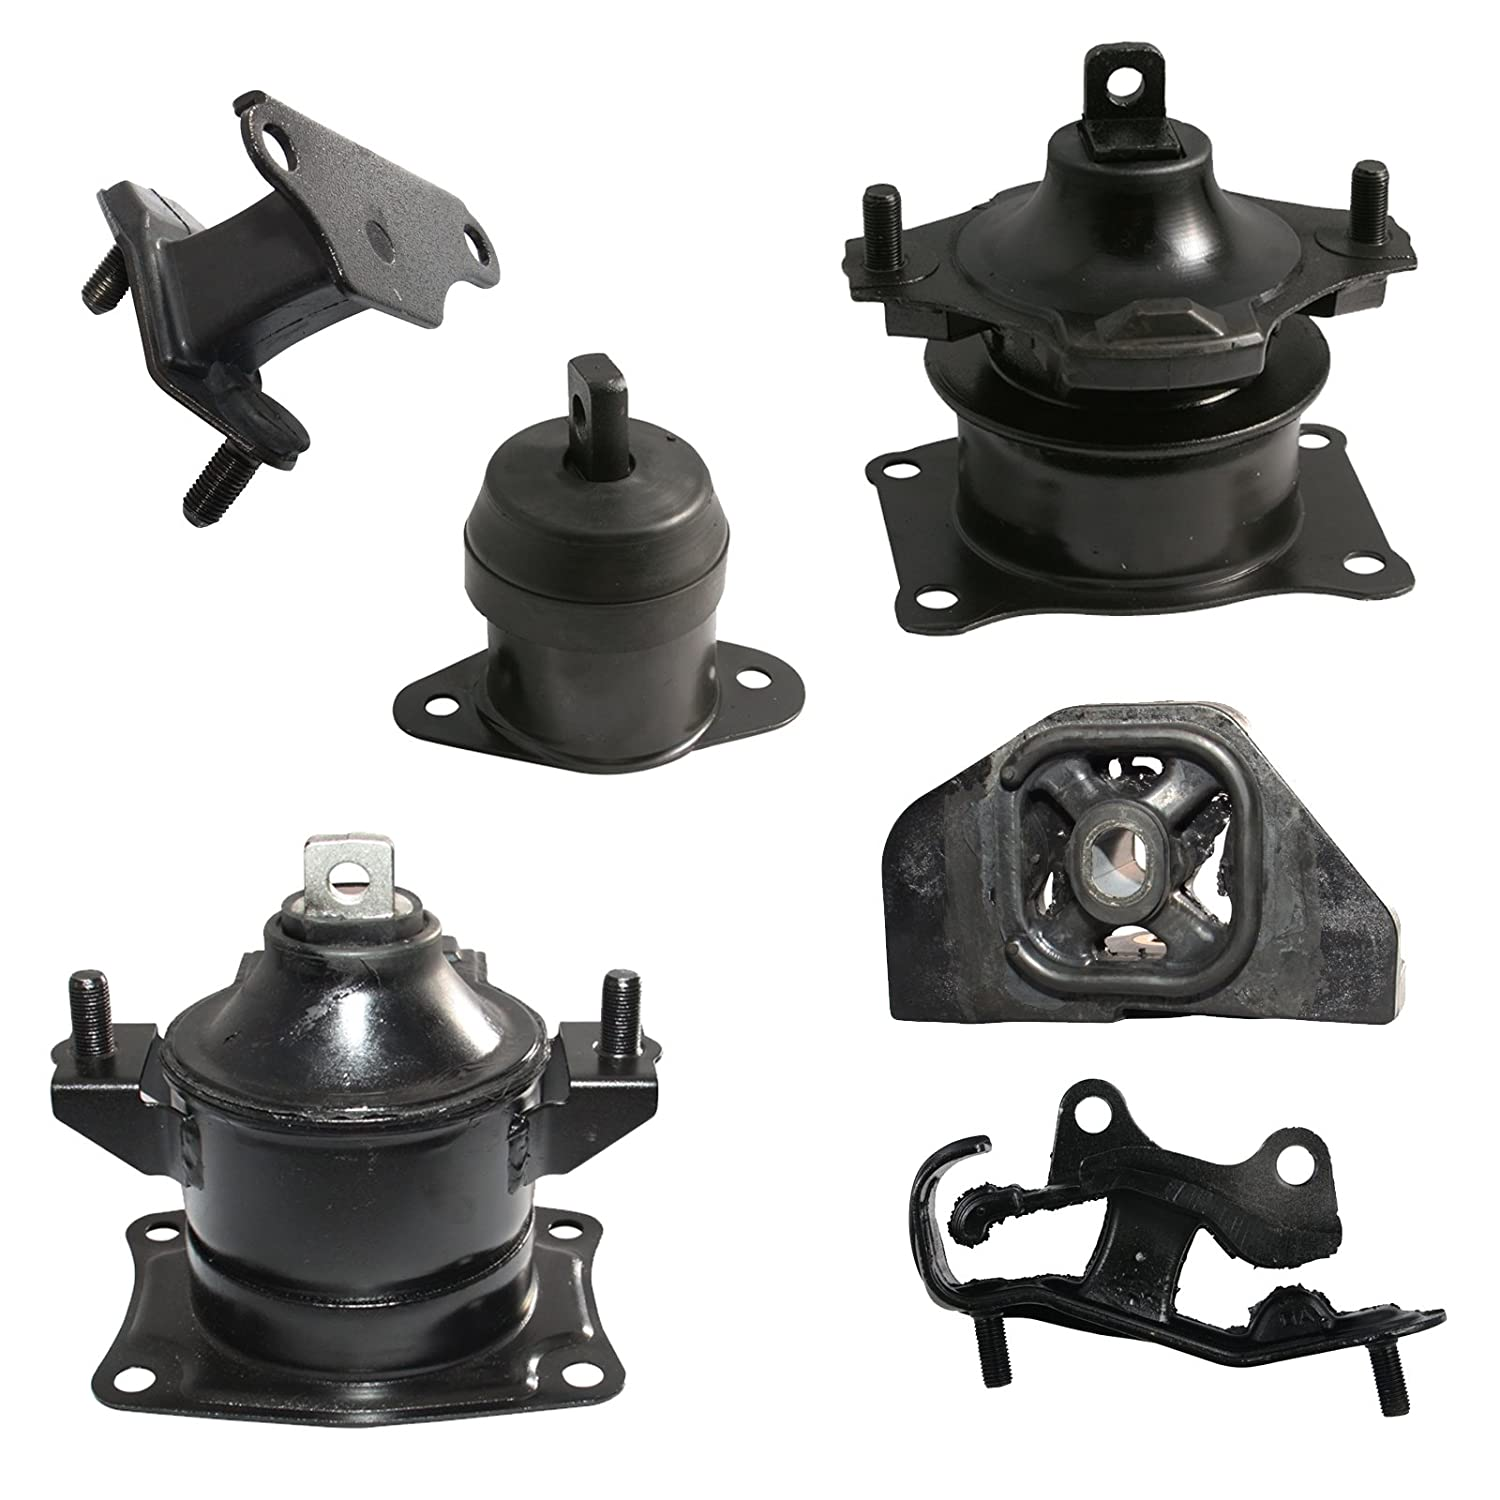 6pc Motor Mounts Set Kit Compatible with 03-07 Honda Accord 3.0L V6 Automatic Auto Transmission 2003 2004 2005 2006 2007 Engine Mounts